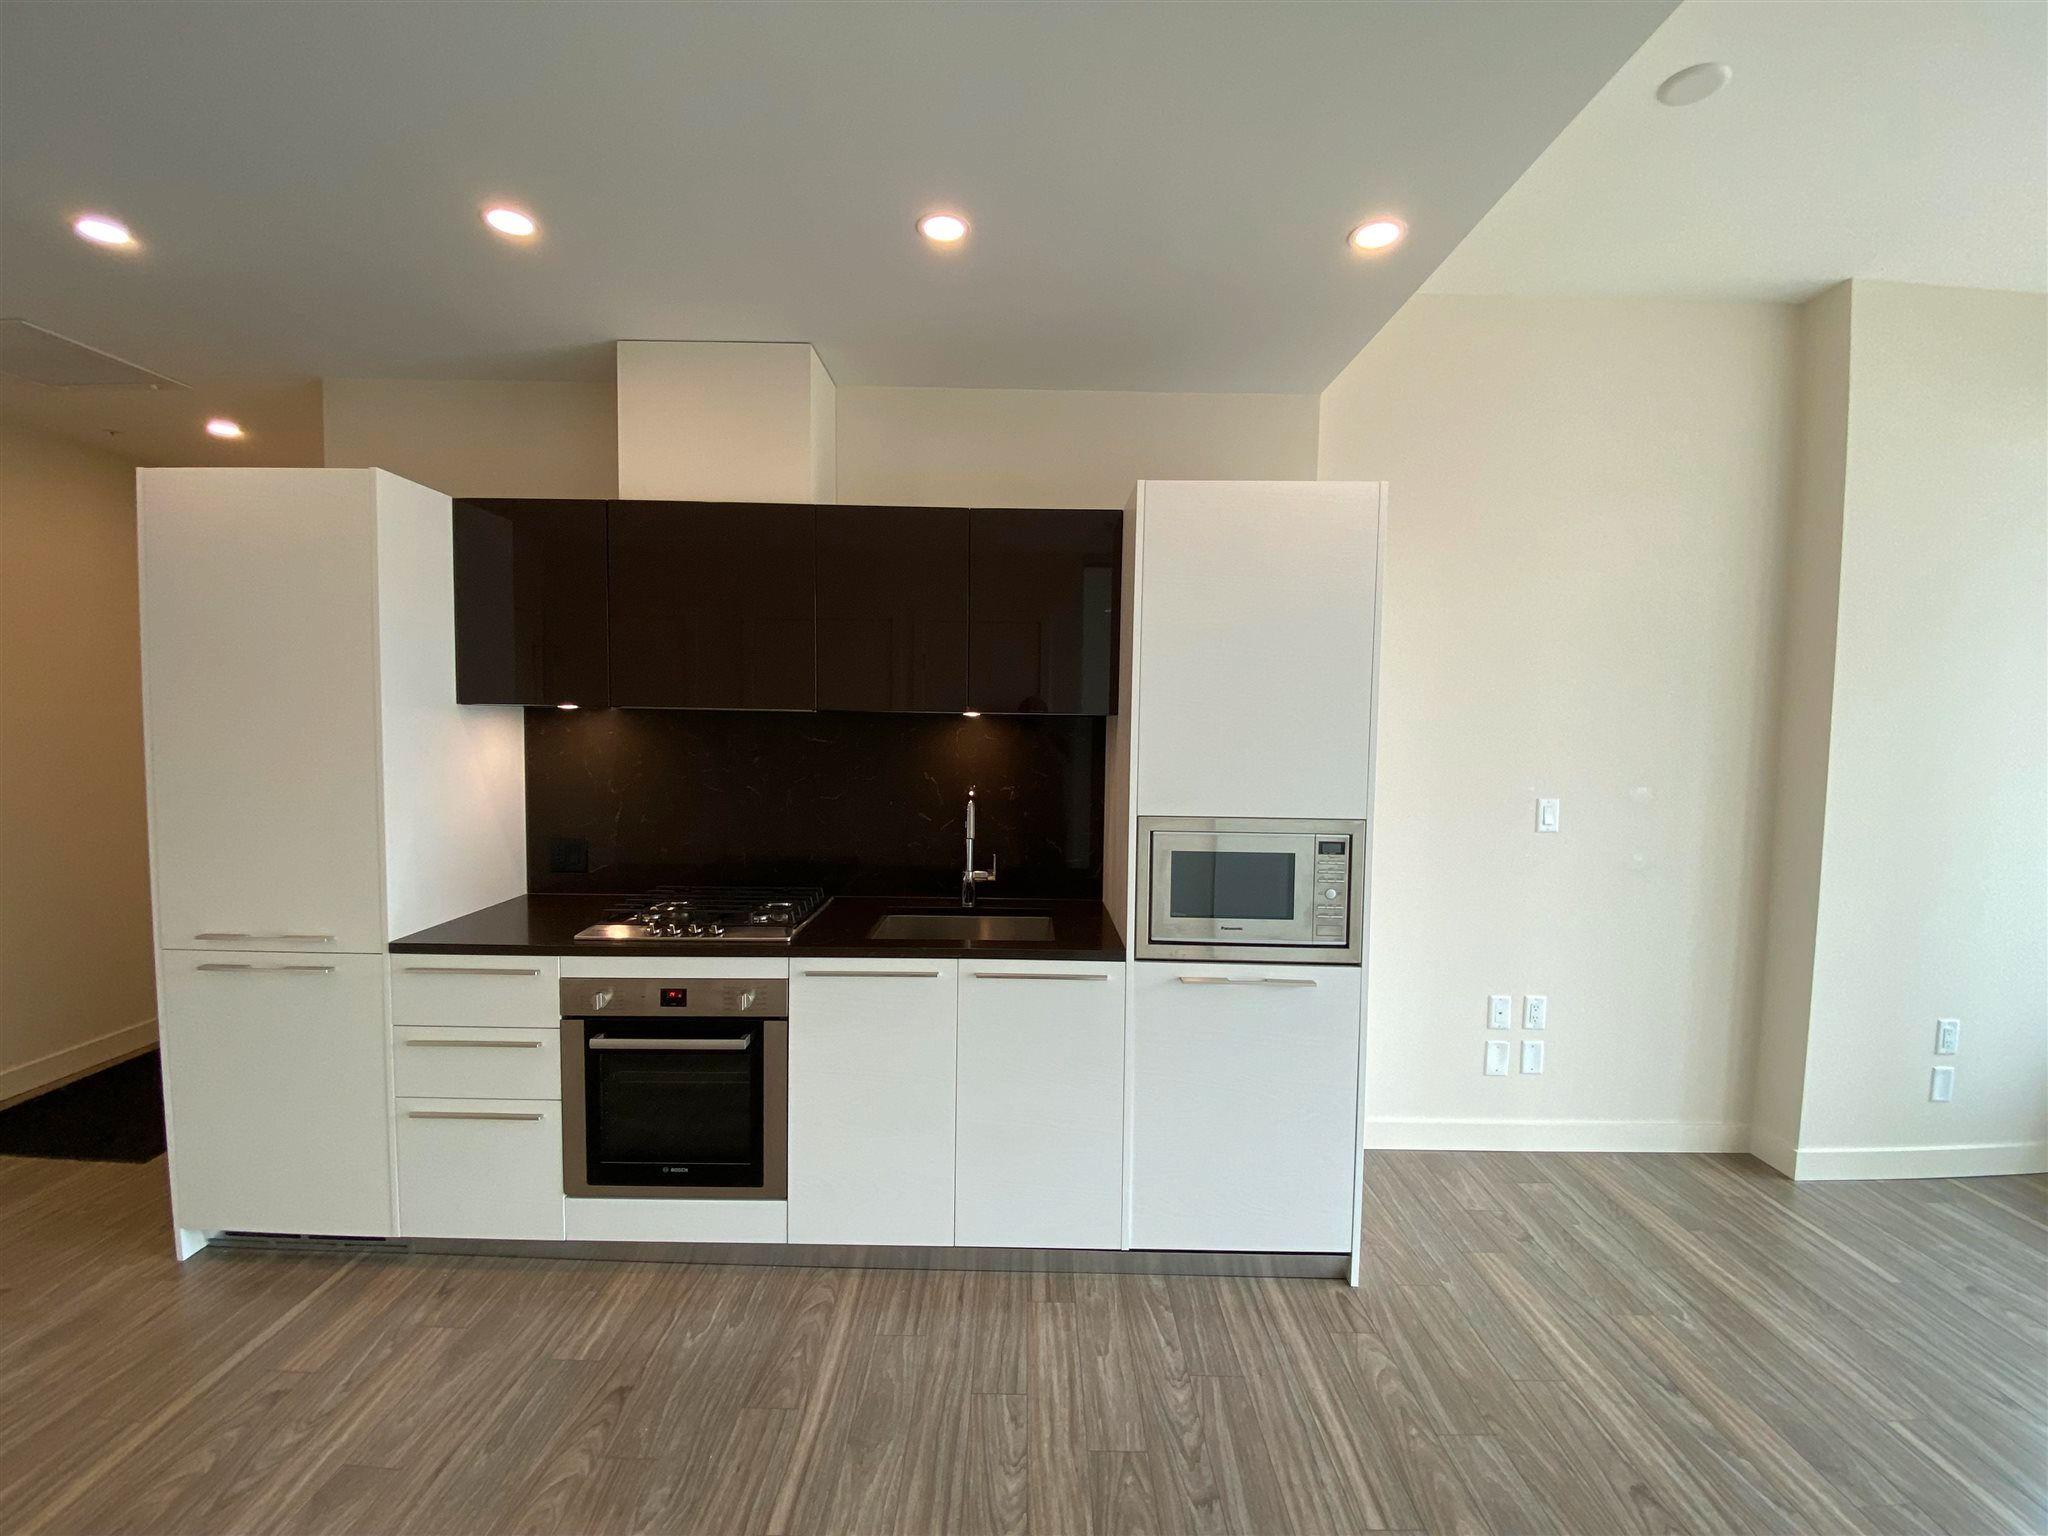 """Photo 5: Photos: 308 6288 CASSIE Avenue in Burnaby: Metrotown Condo for sale in """"GOLD HOUSE SOUTH TOWER"""" (Burnaby South)  : MLS®# R2606367"""